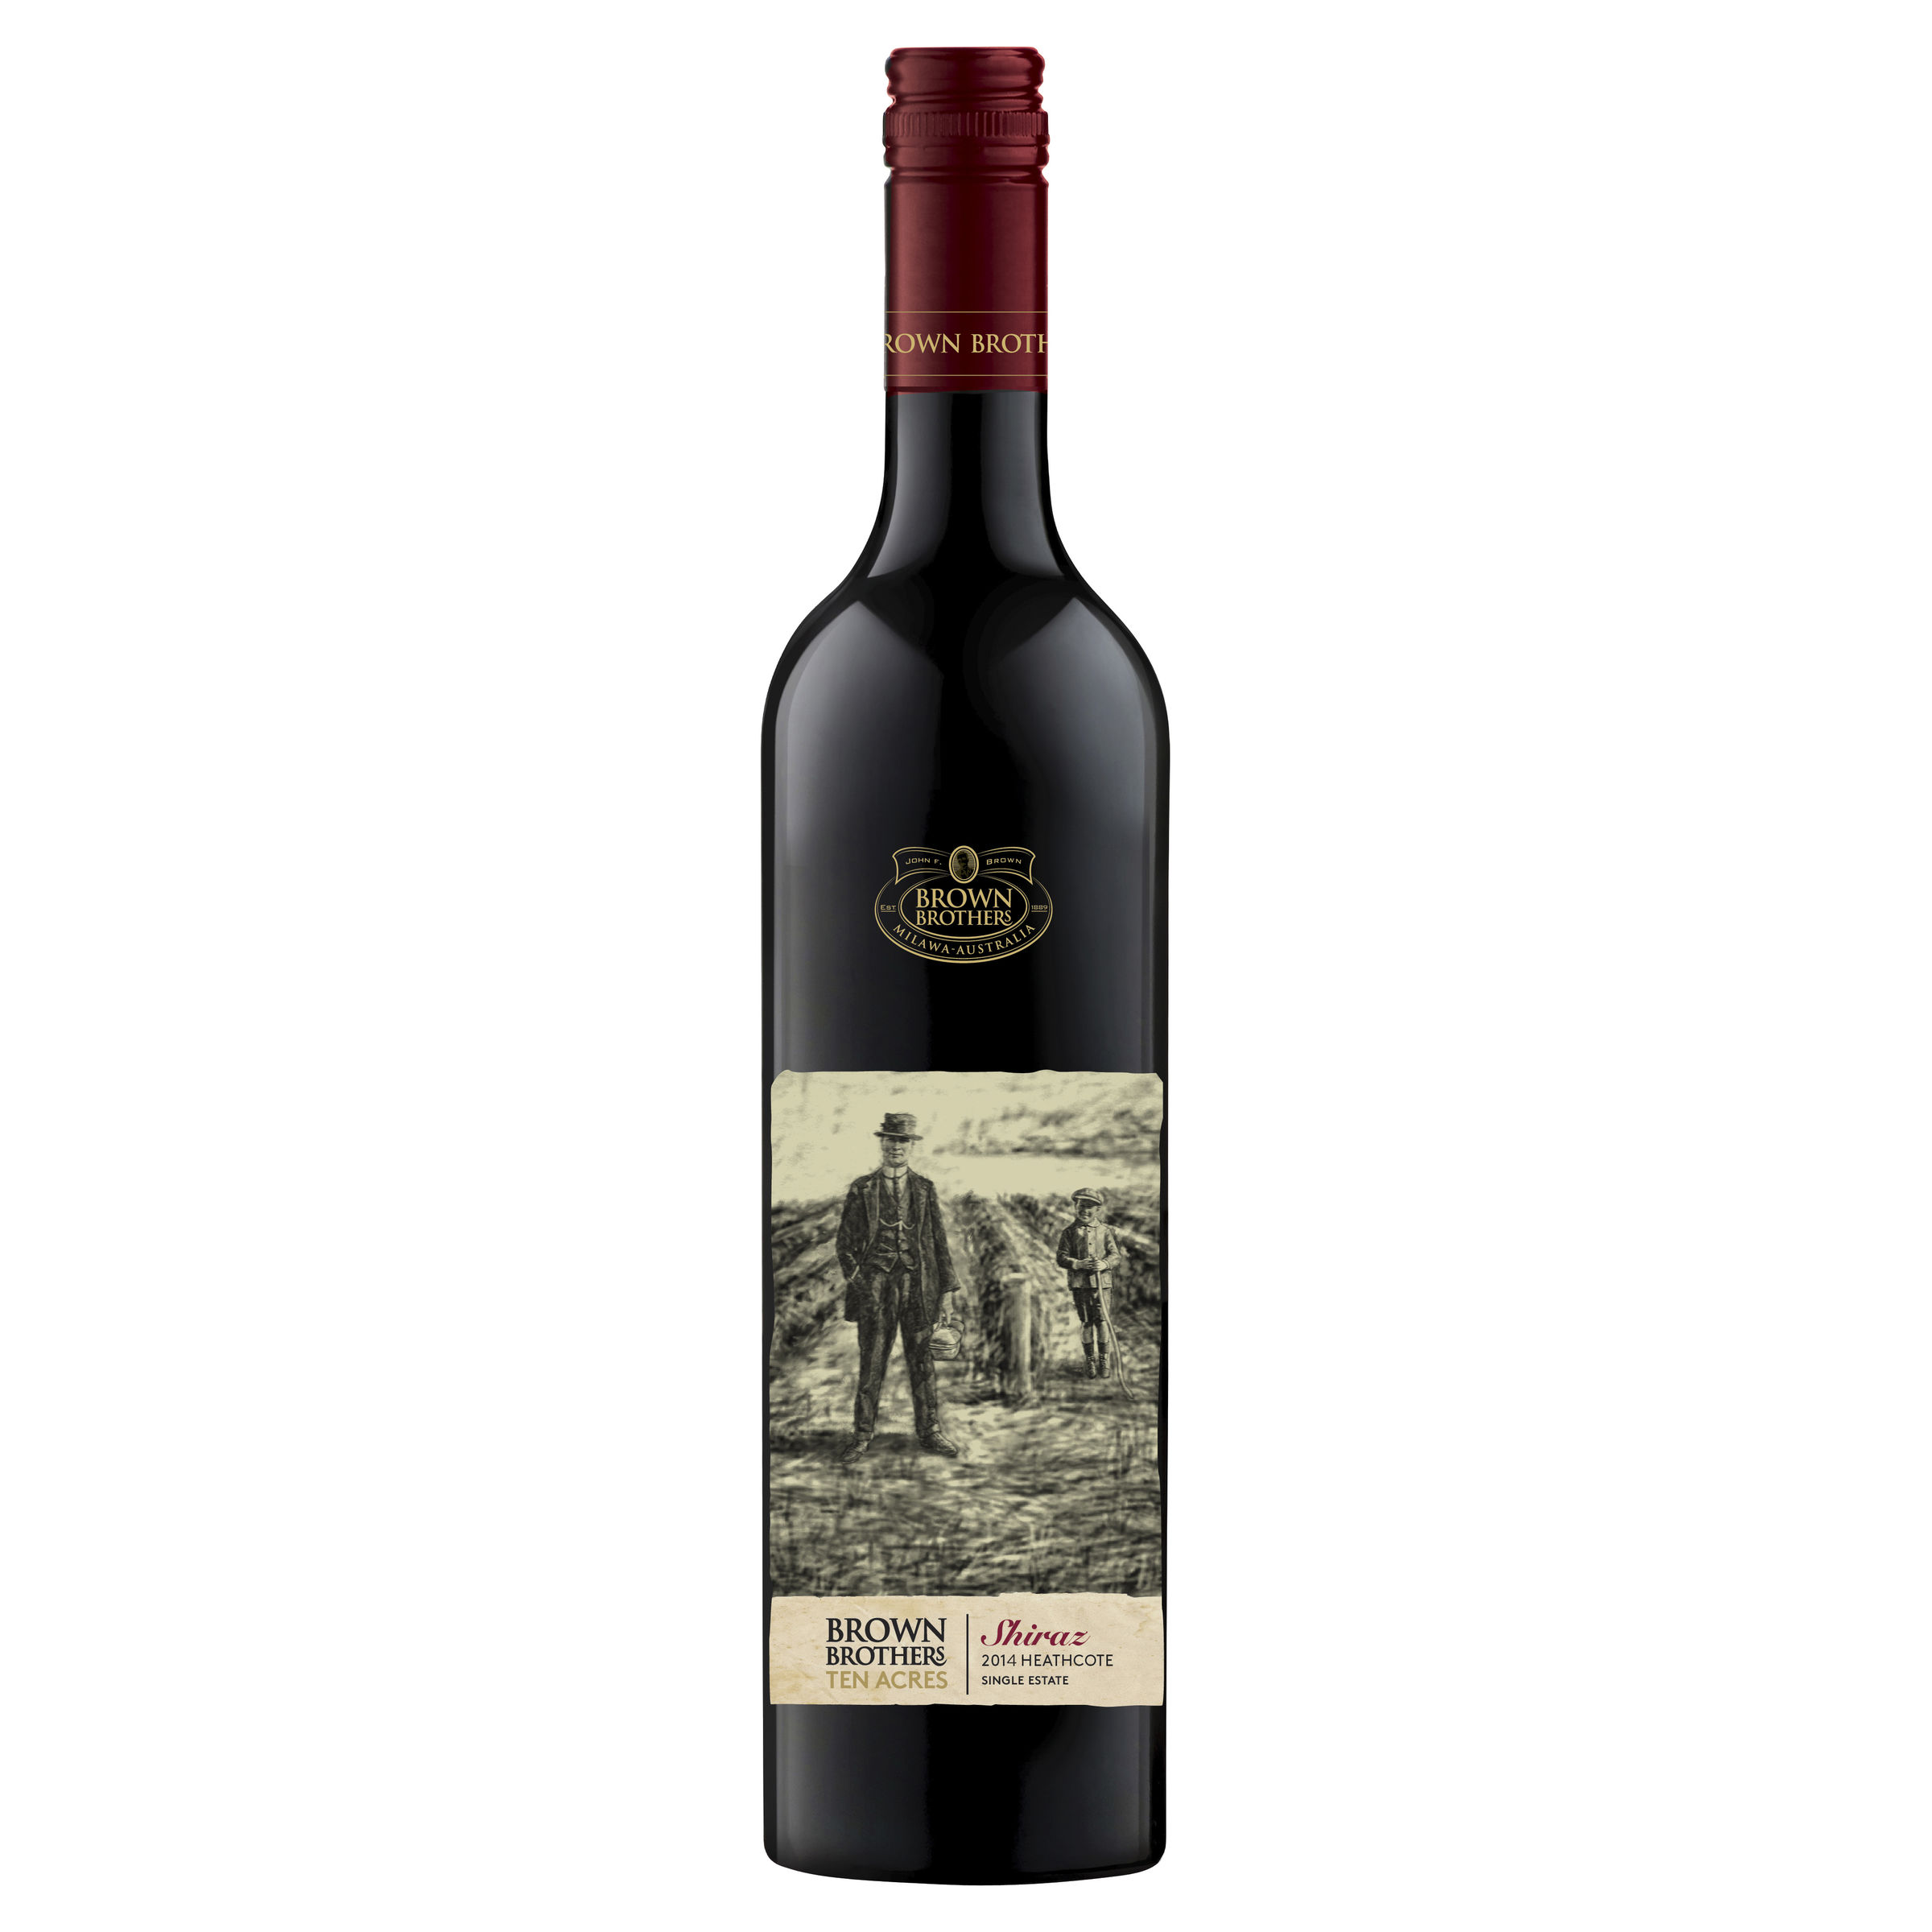 BROWN BROTHERS TEN ACRES SHIRAZ